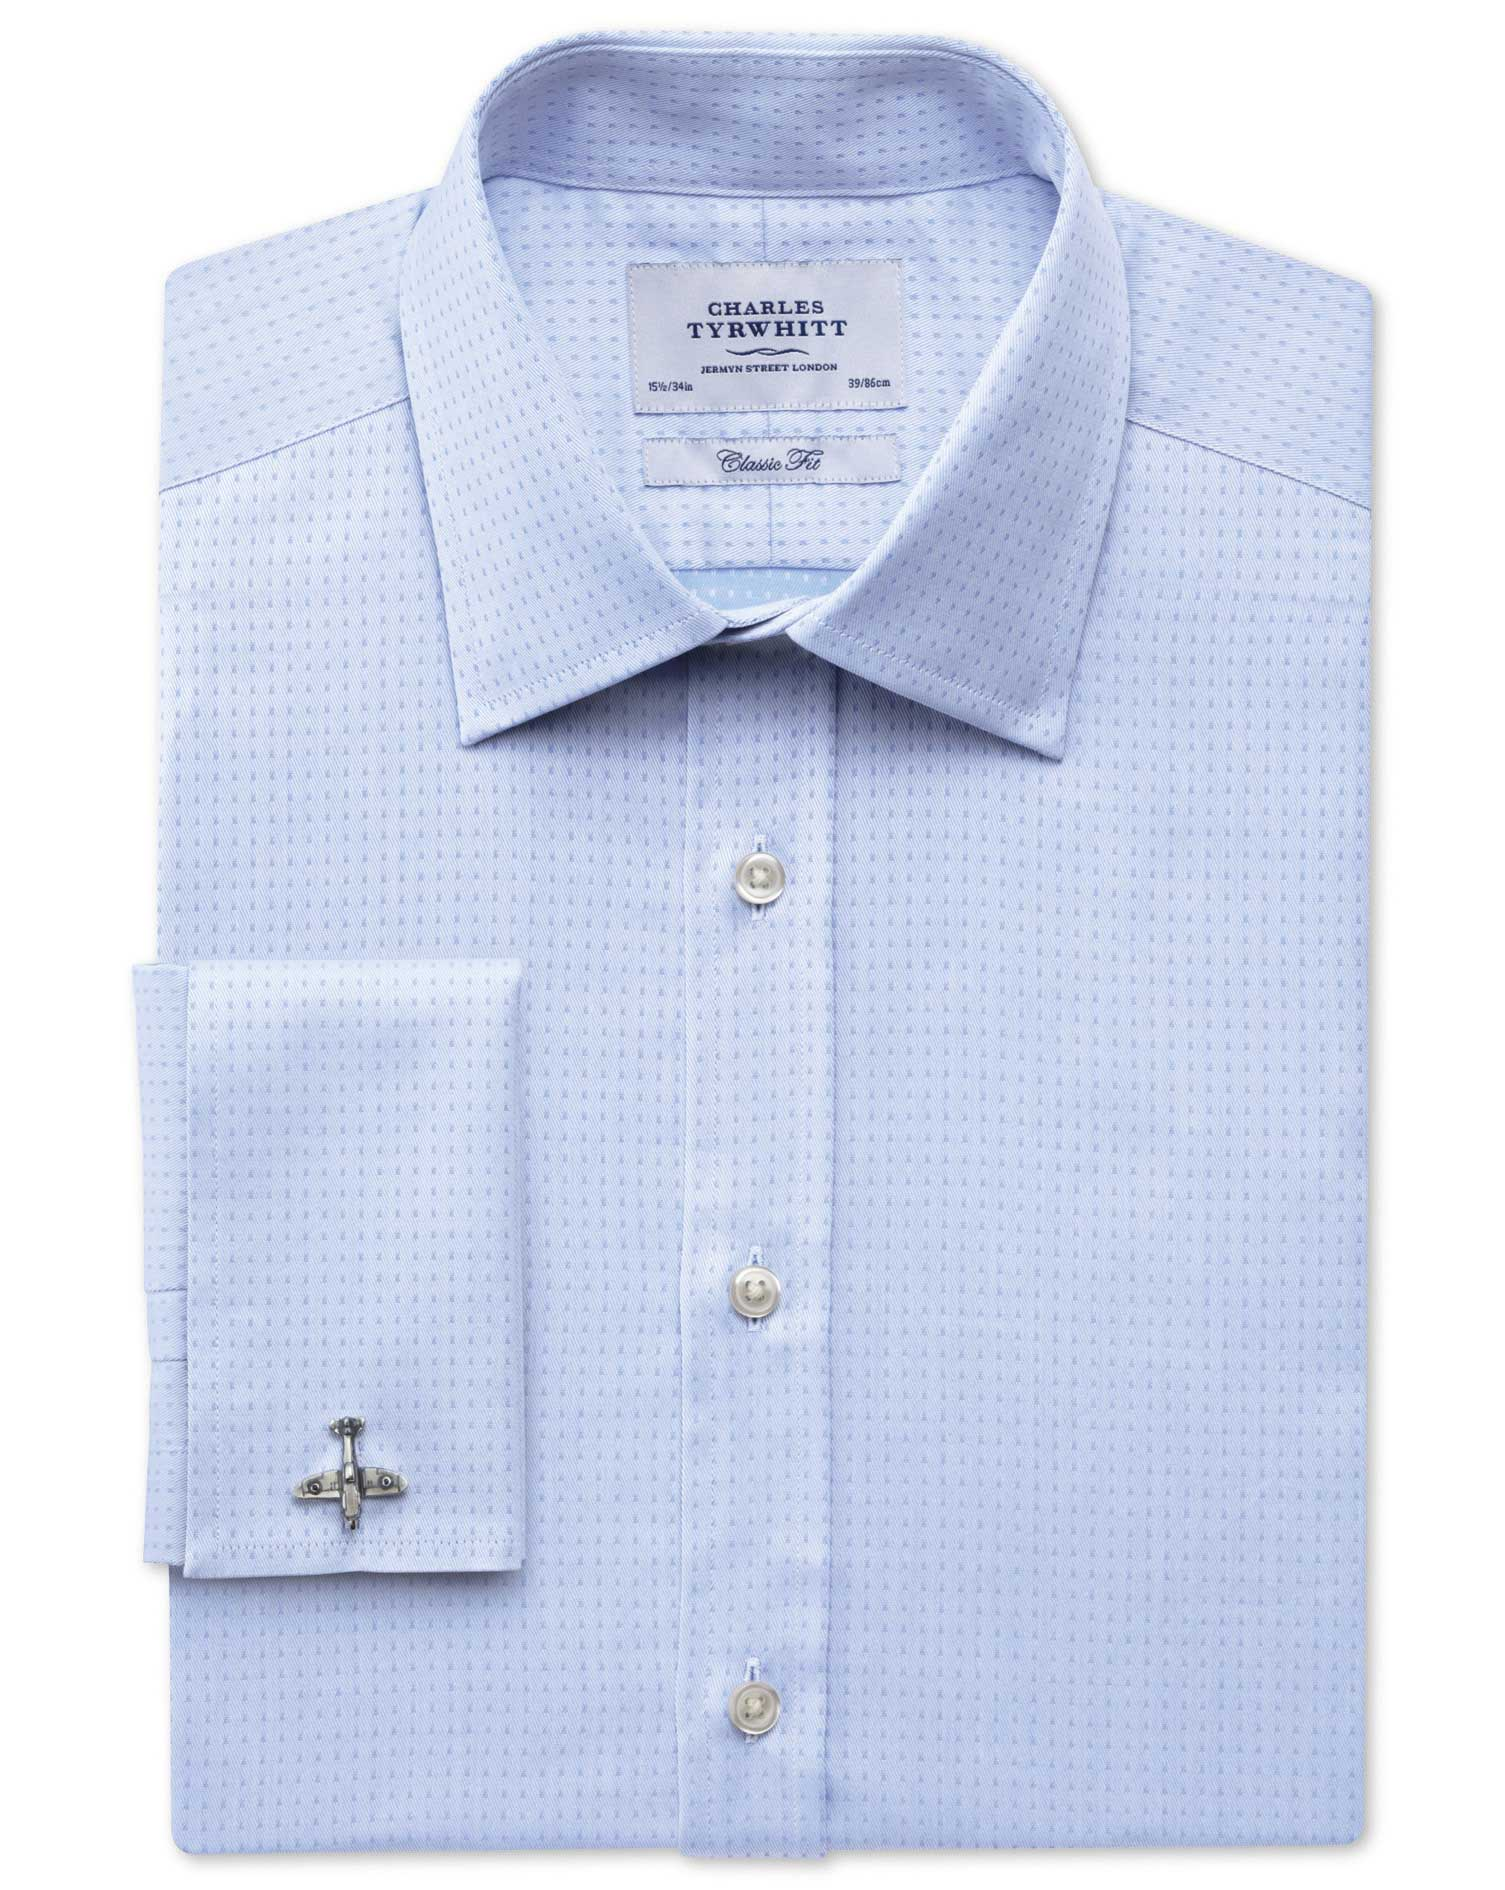 Classic Fit Egyptian Cotton Textured Dobby Sky Blue Formal Shirt Single Cuff Size 15.5/37 by Charles